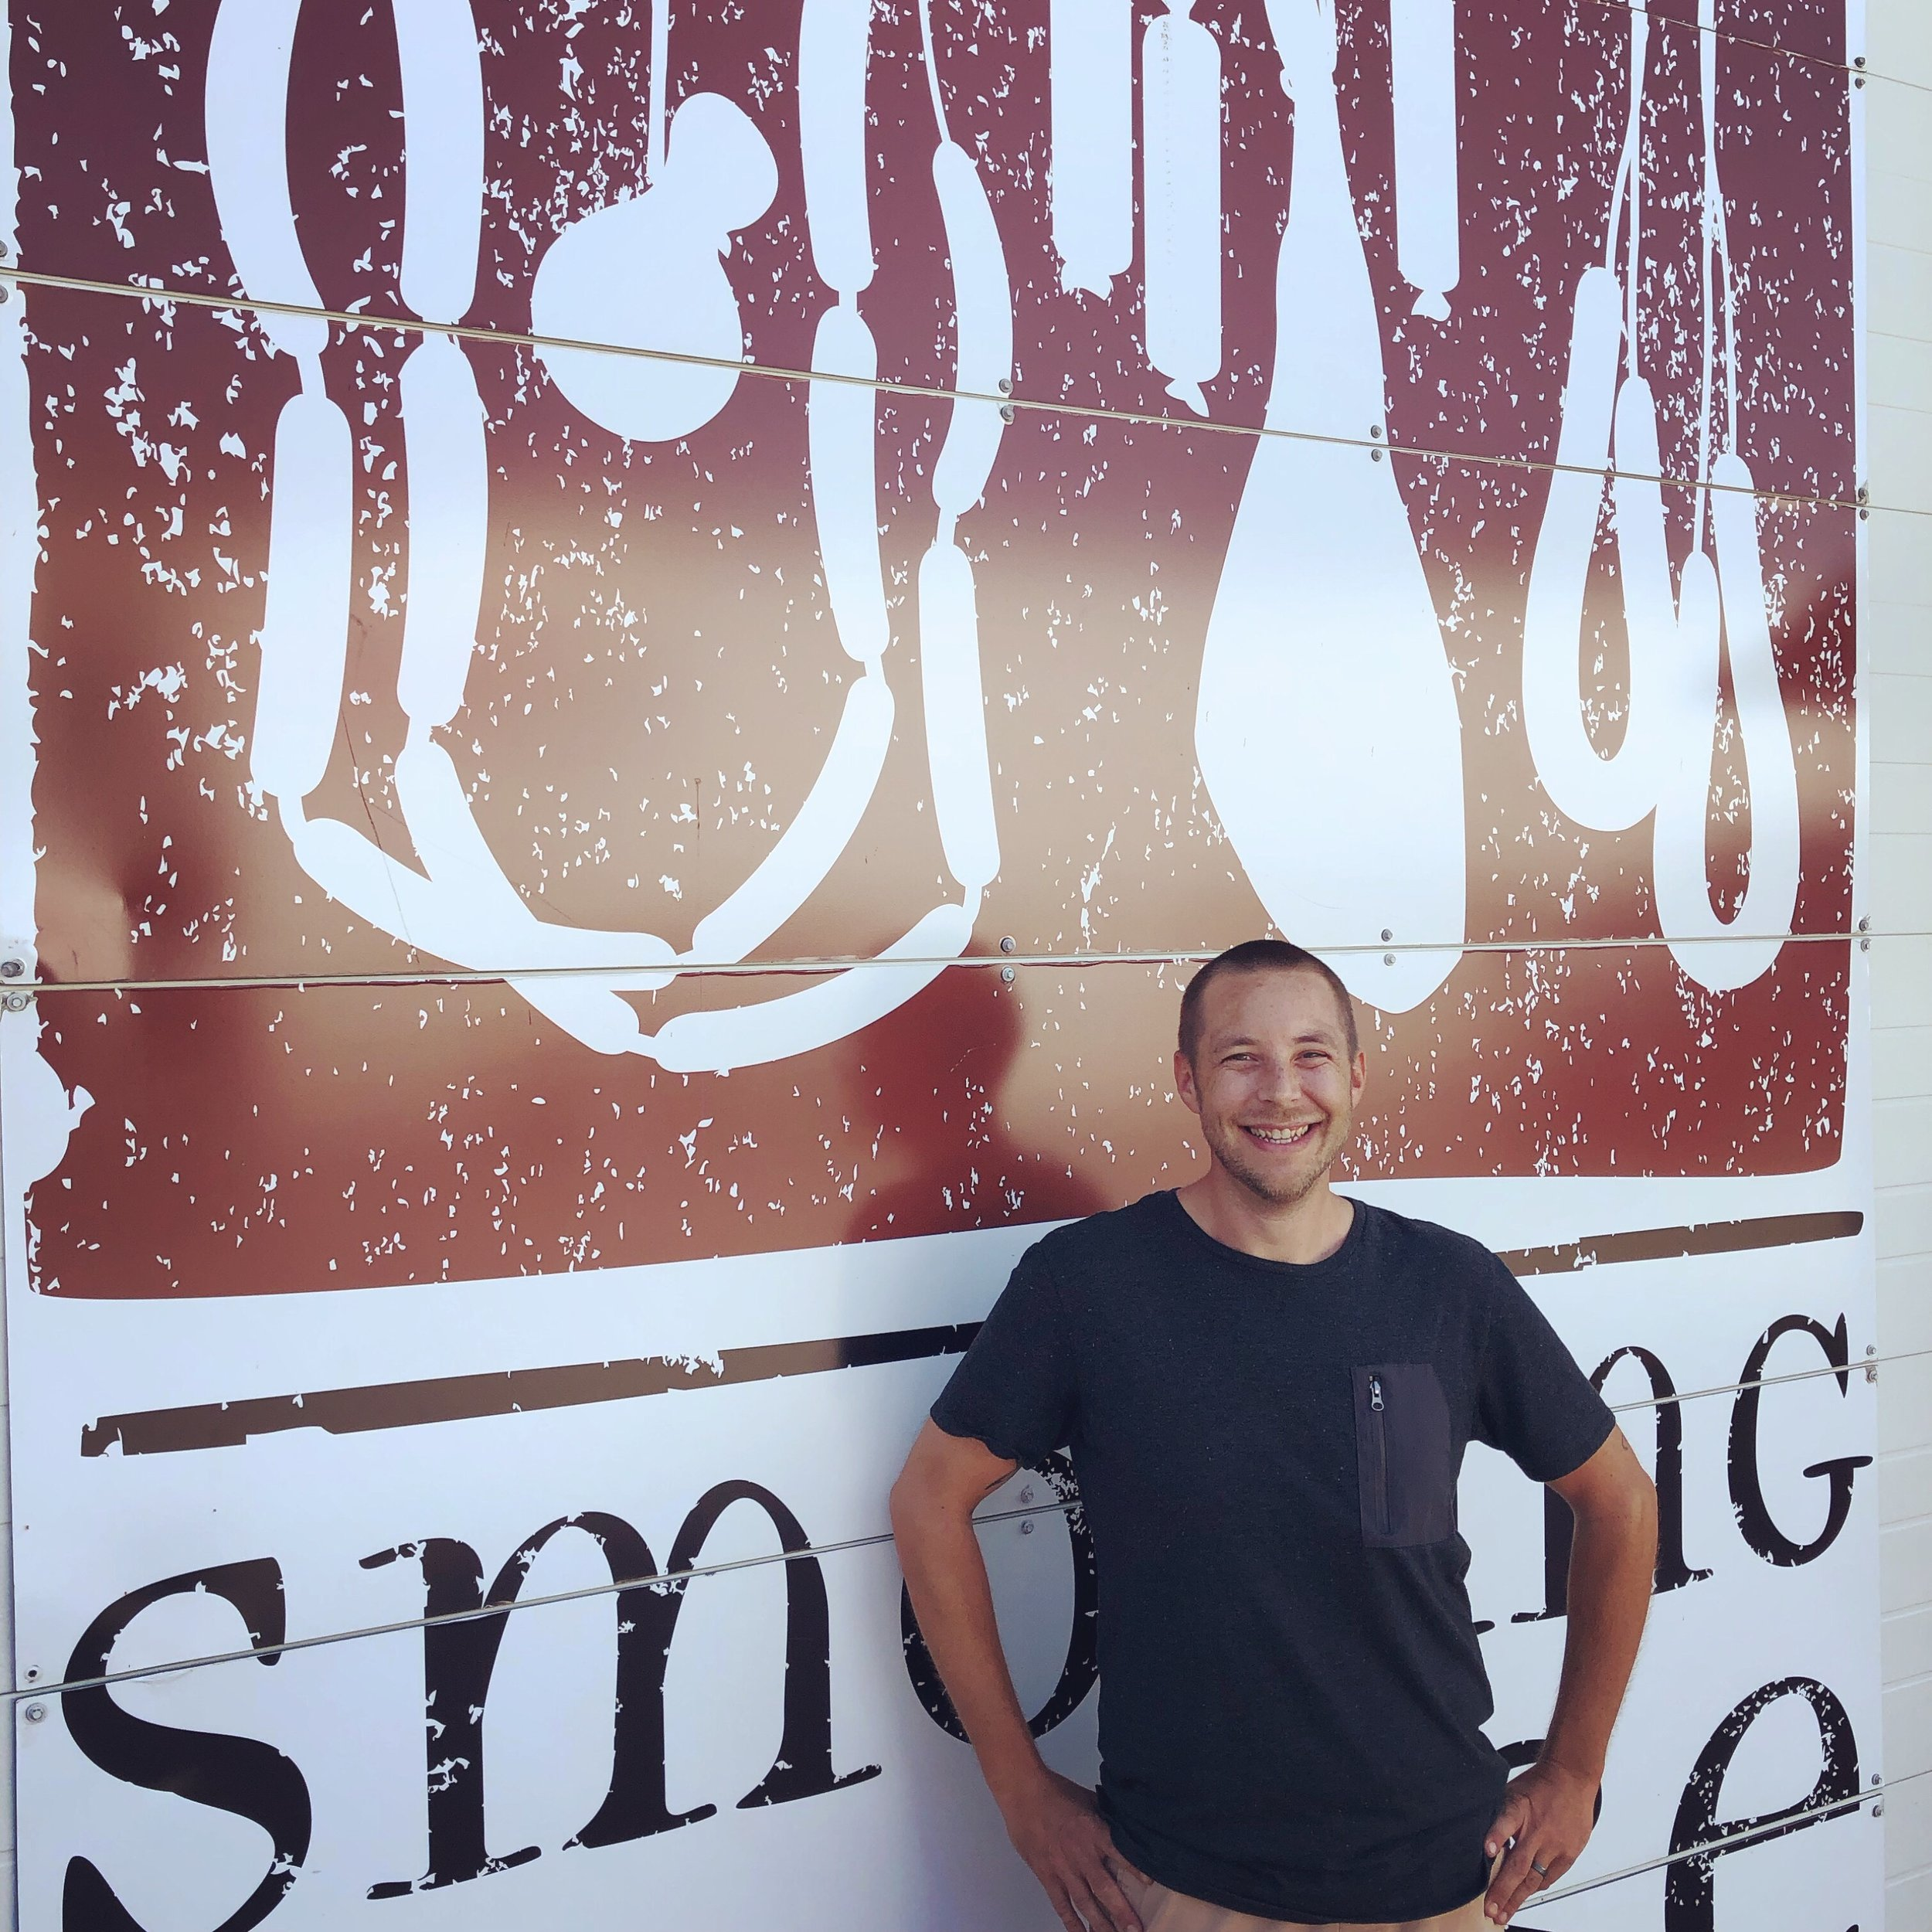 Help us welcome Josh to the Smoking Goose sales team! Which meat treat is his favorite? The City Ham or Jowl Bacon he fries up before cycling to work are contenders, but a national award winner claims the top slot.